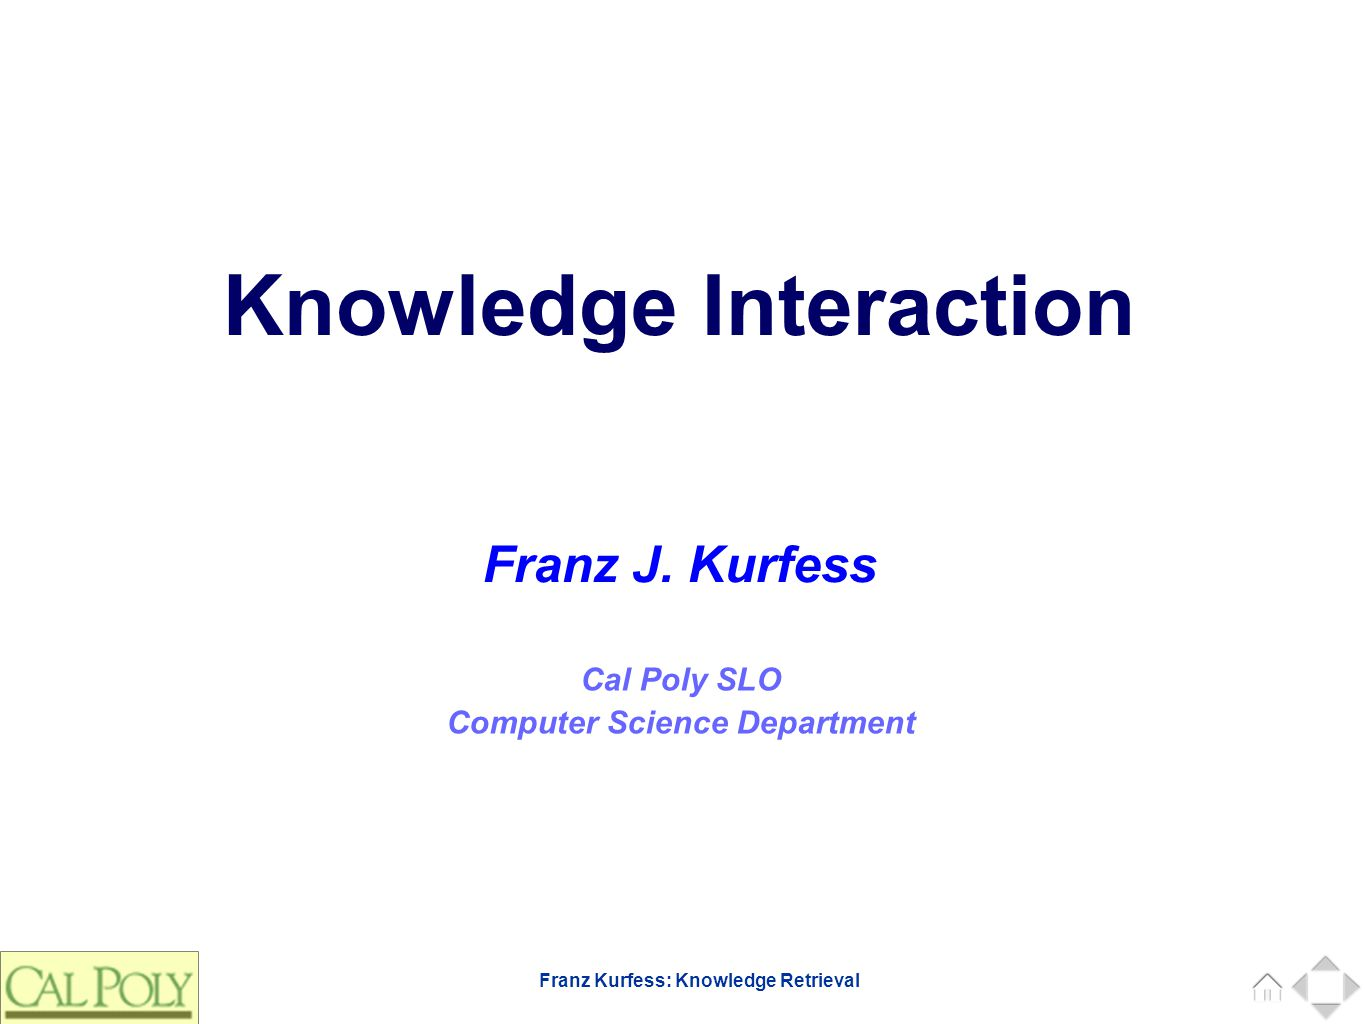 Franz Kurfess: Knowledge Retrieval Cal Poly SLO Computer Science Department Franz J. Kurfess Knowledge Interaction